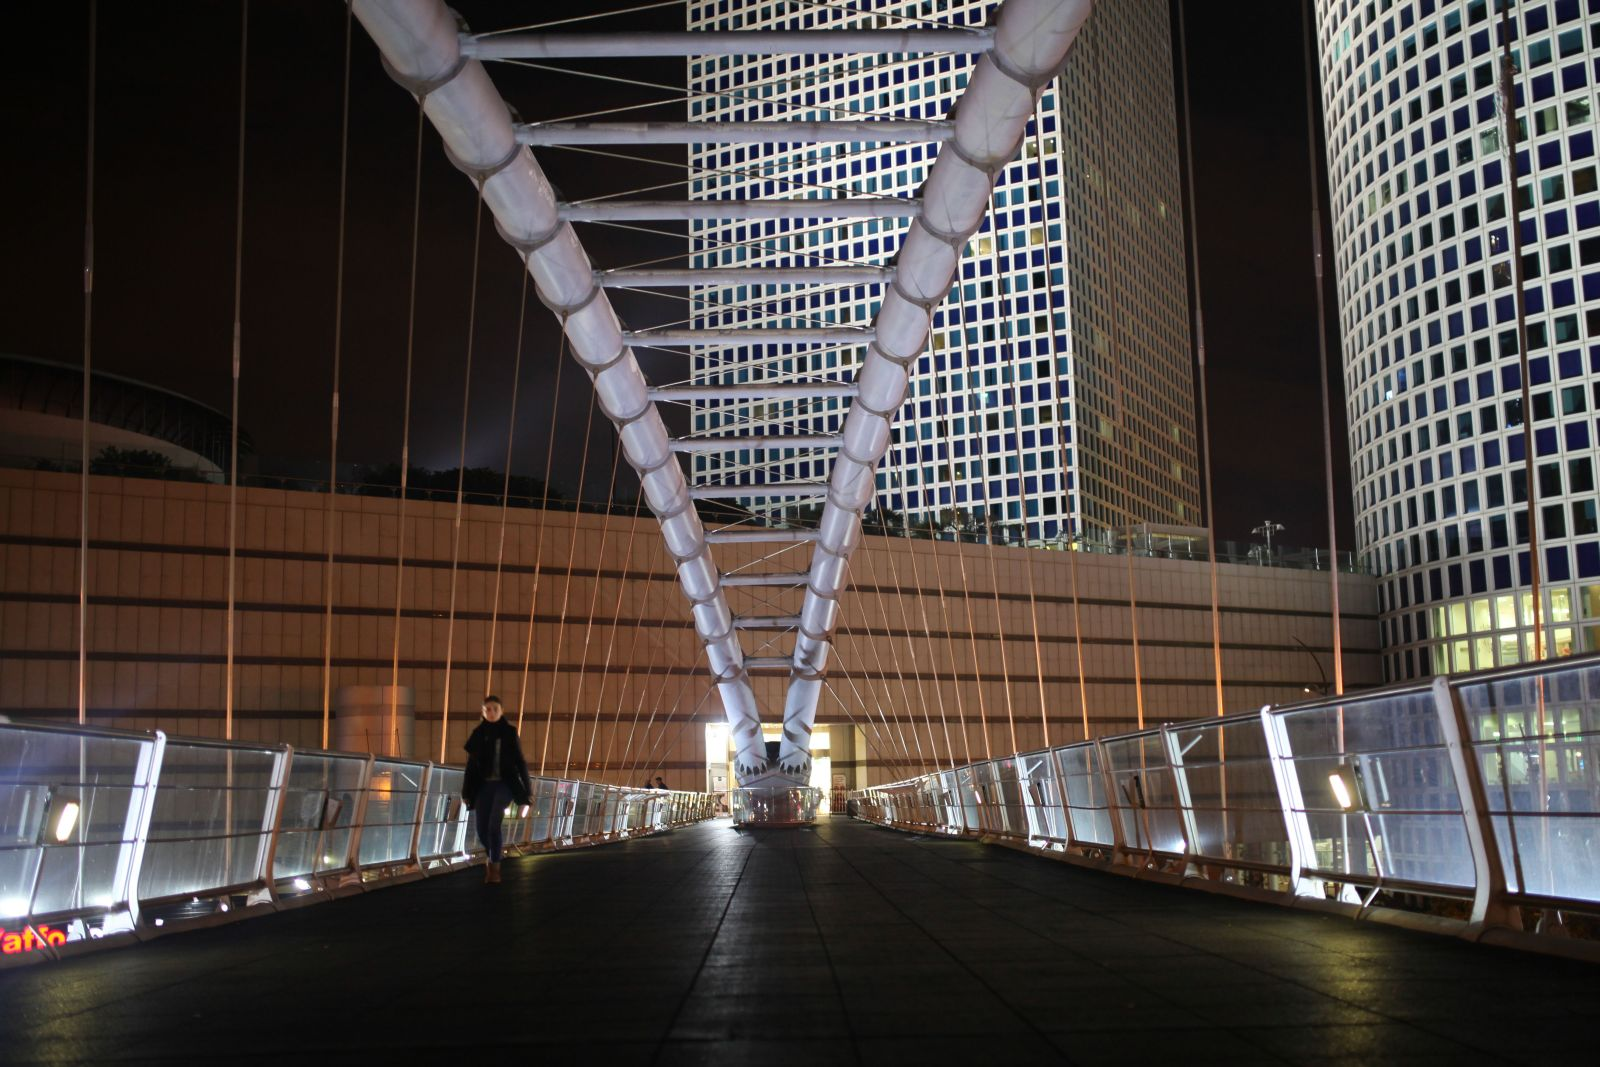 Azrieli Center Bridge in Tel Aviv may be Israel's most used pedestrian span. Photo by FLASH90